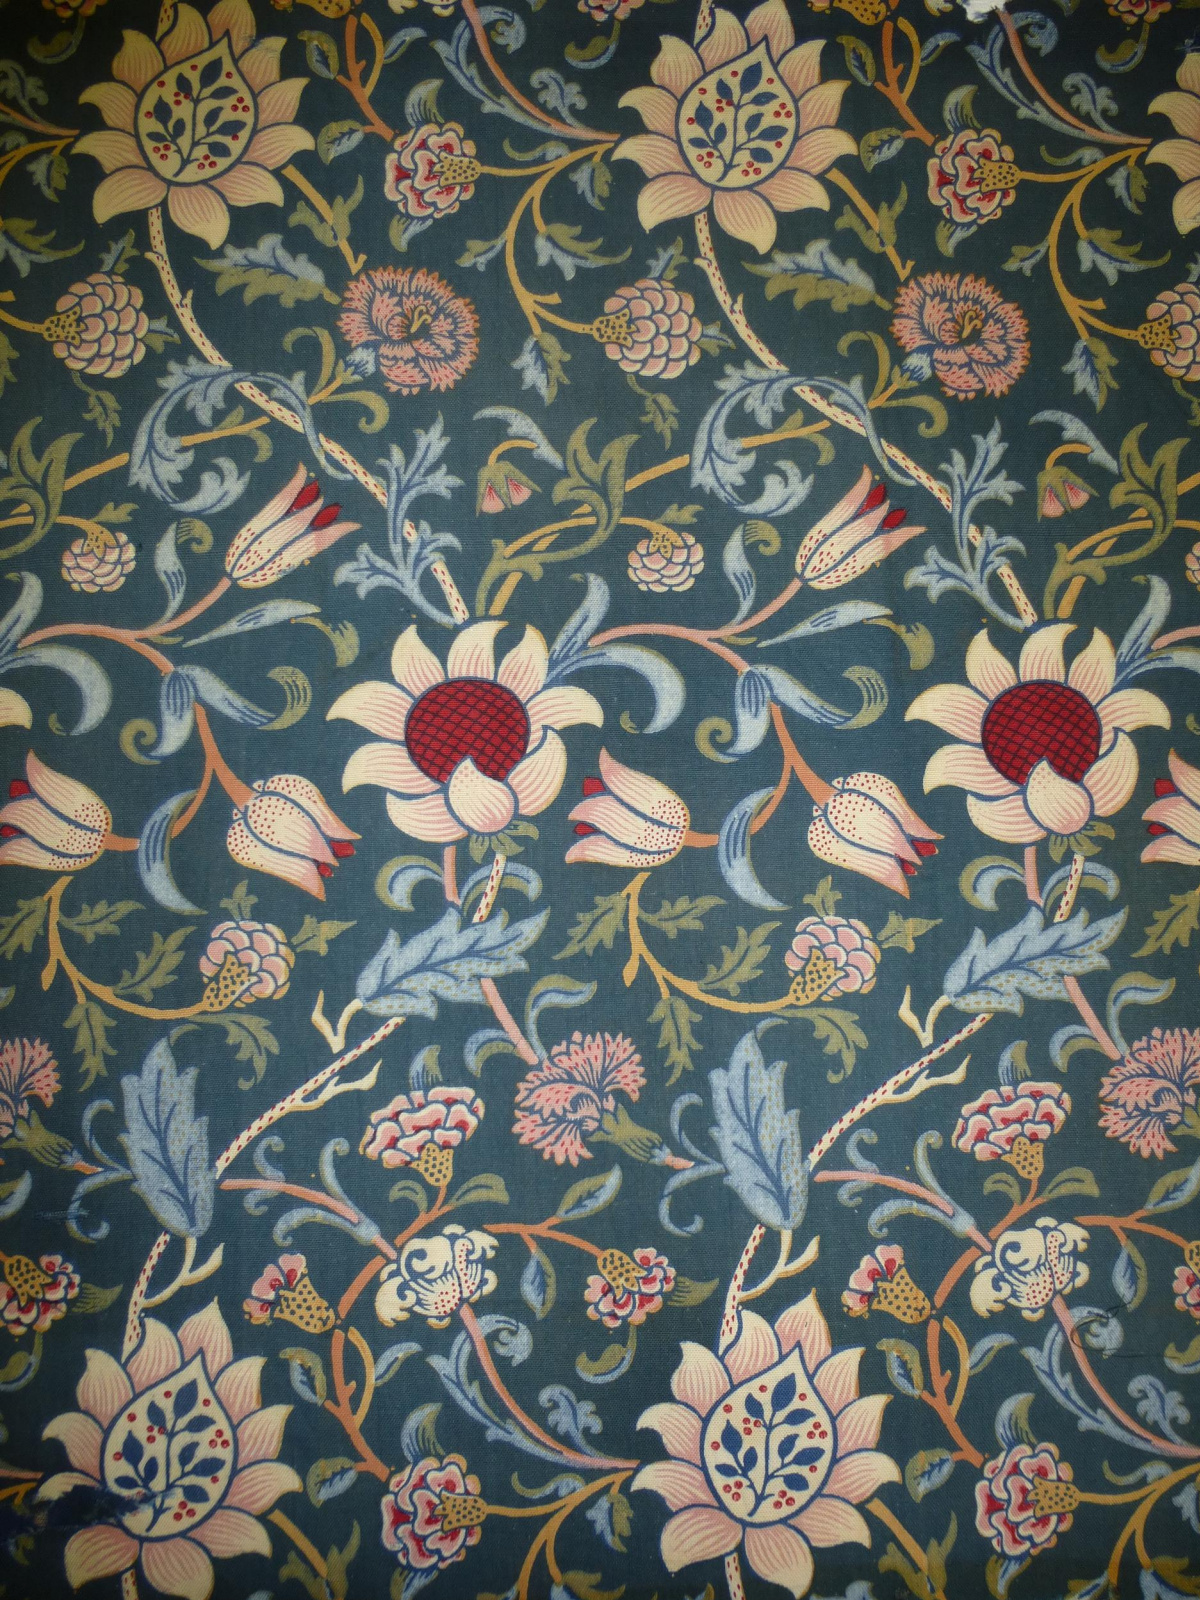 William Morris.  Evenlod